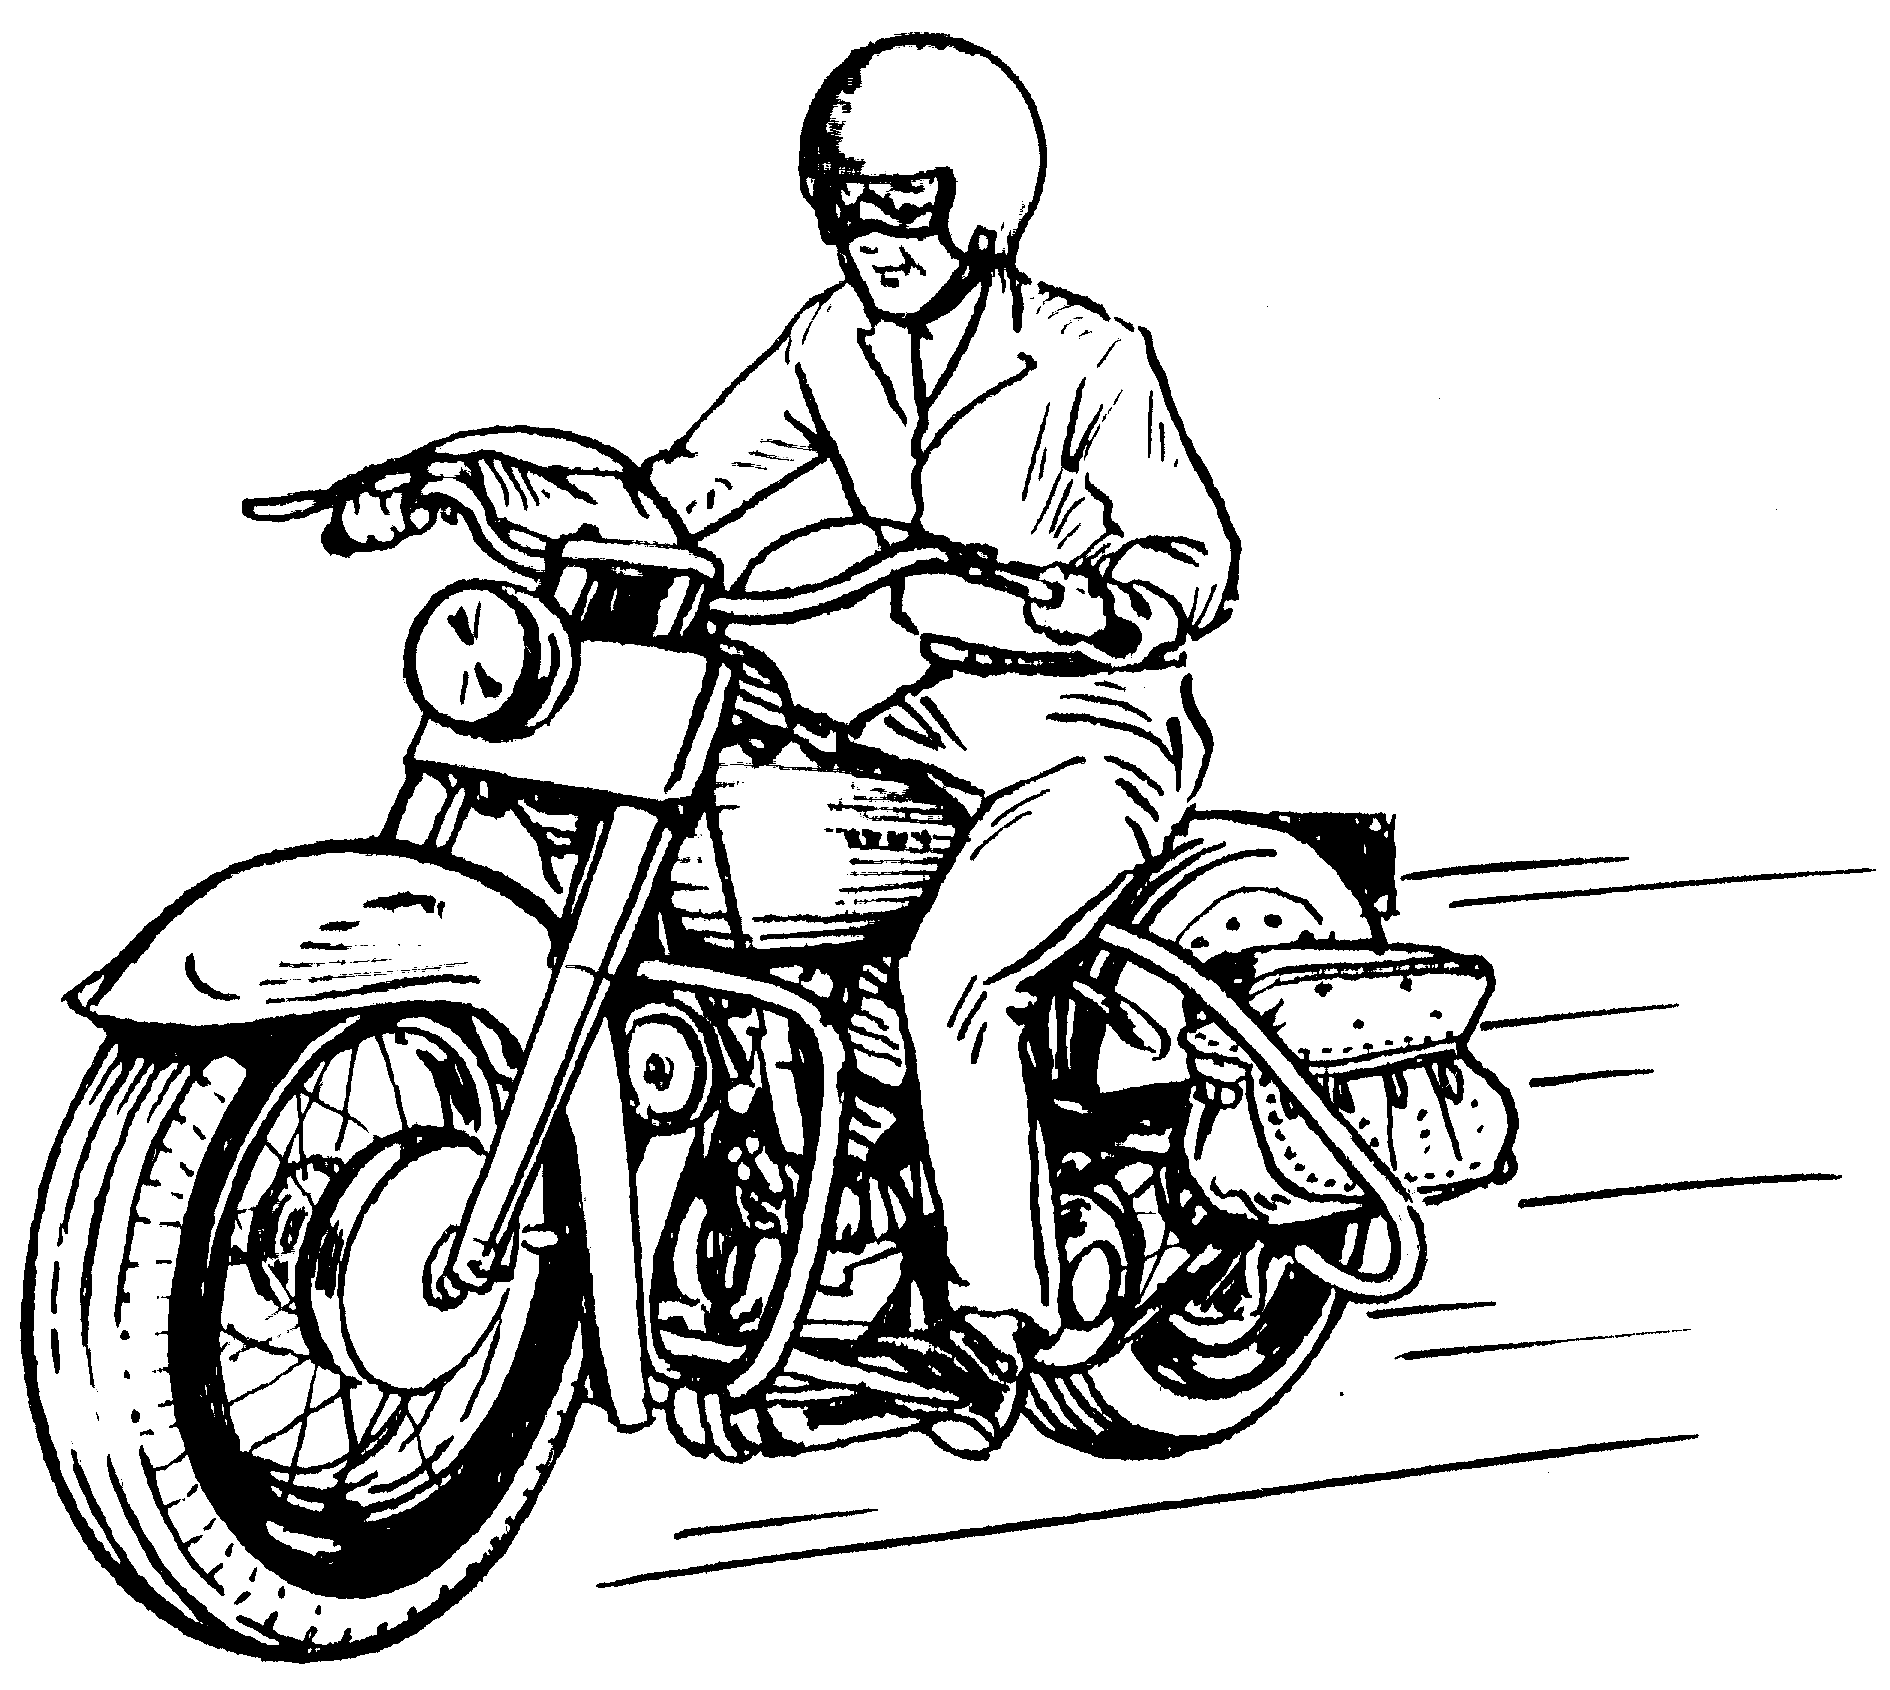 motorcycle drawing photos some classic motorcycle line art drawings drawing motorcycle